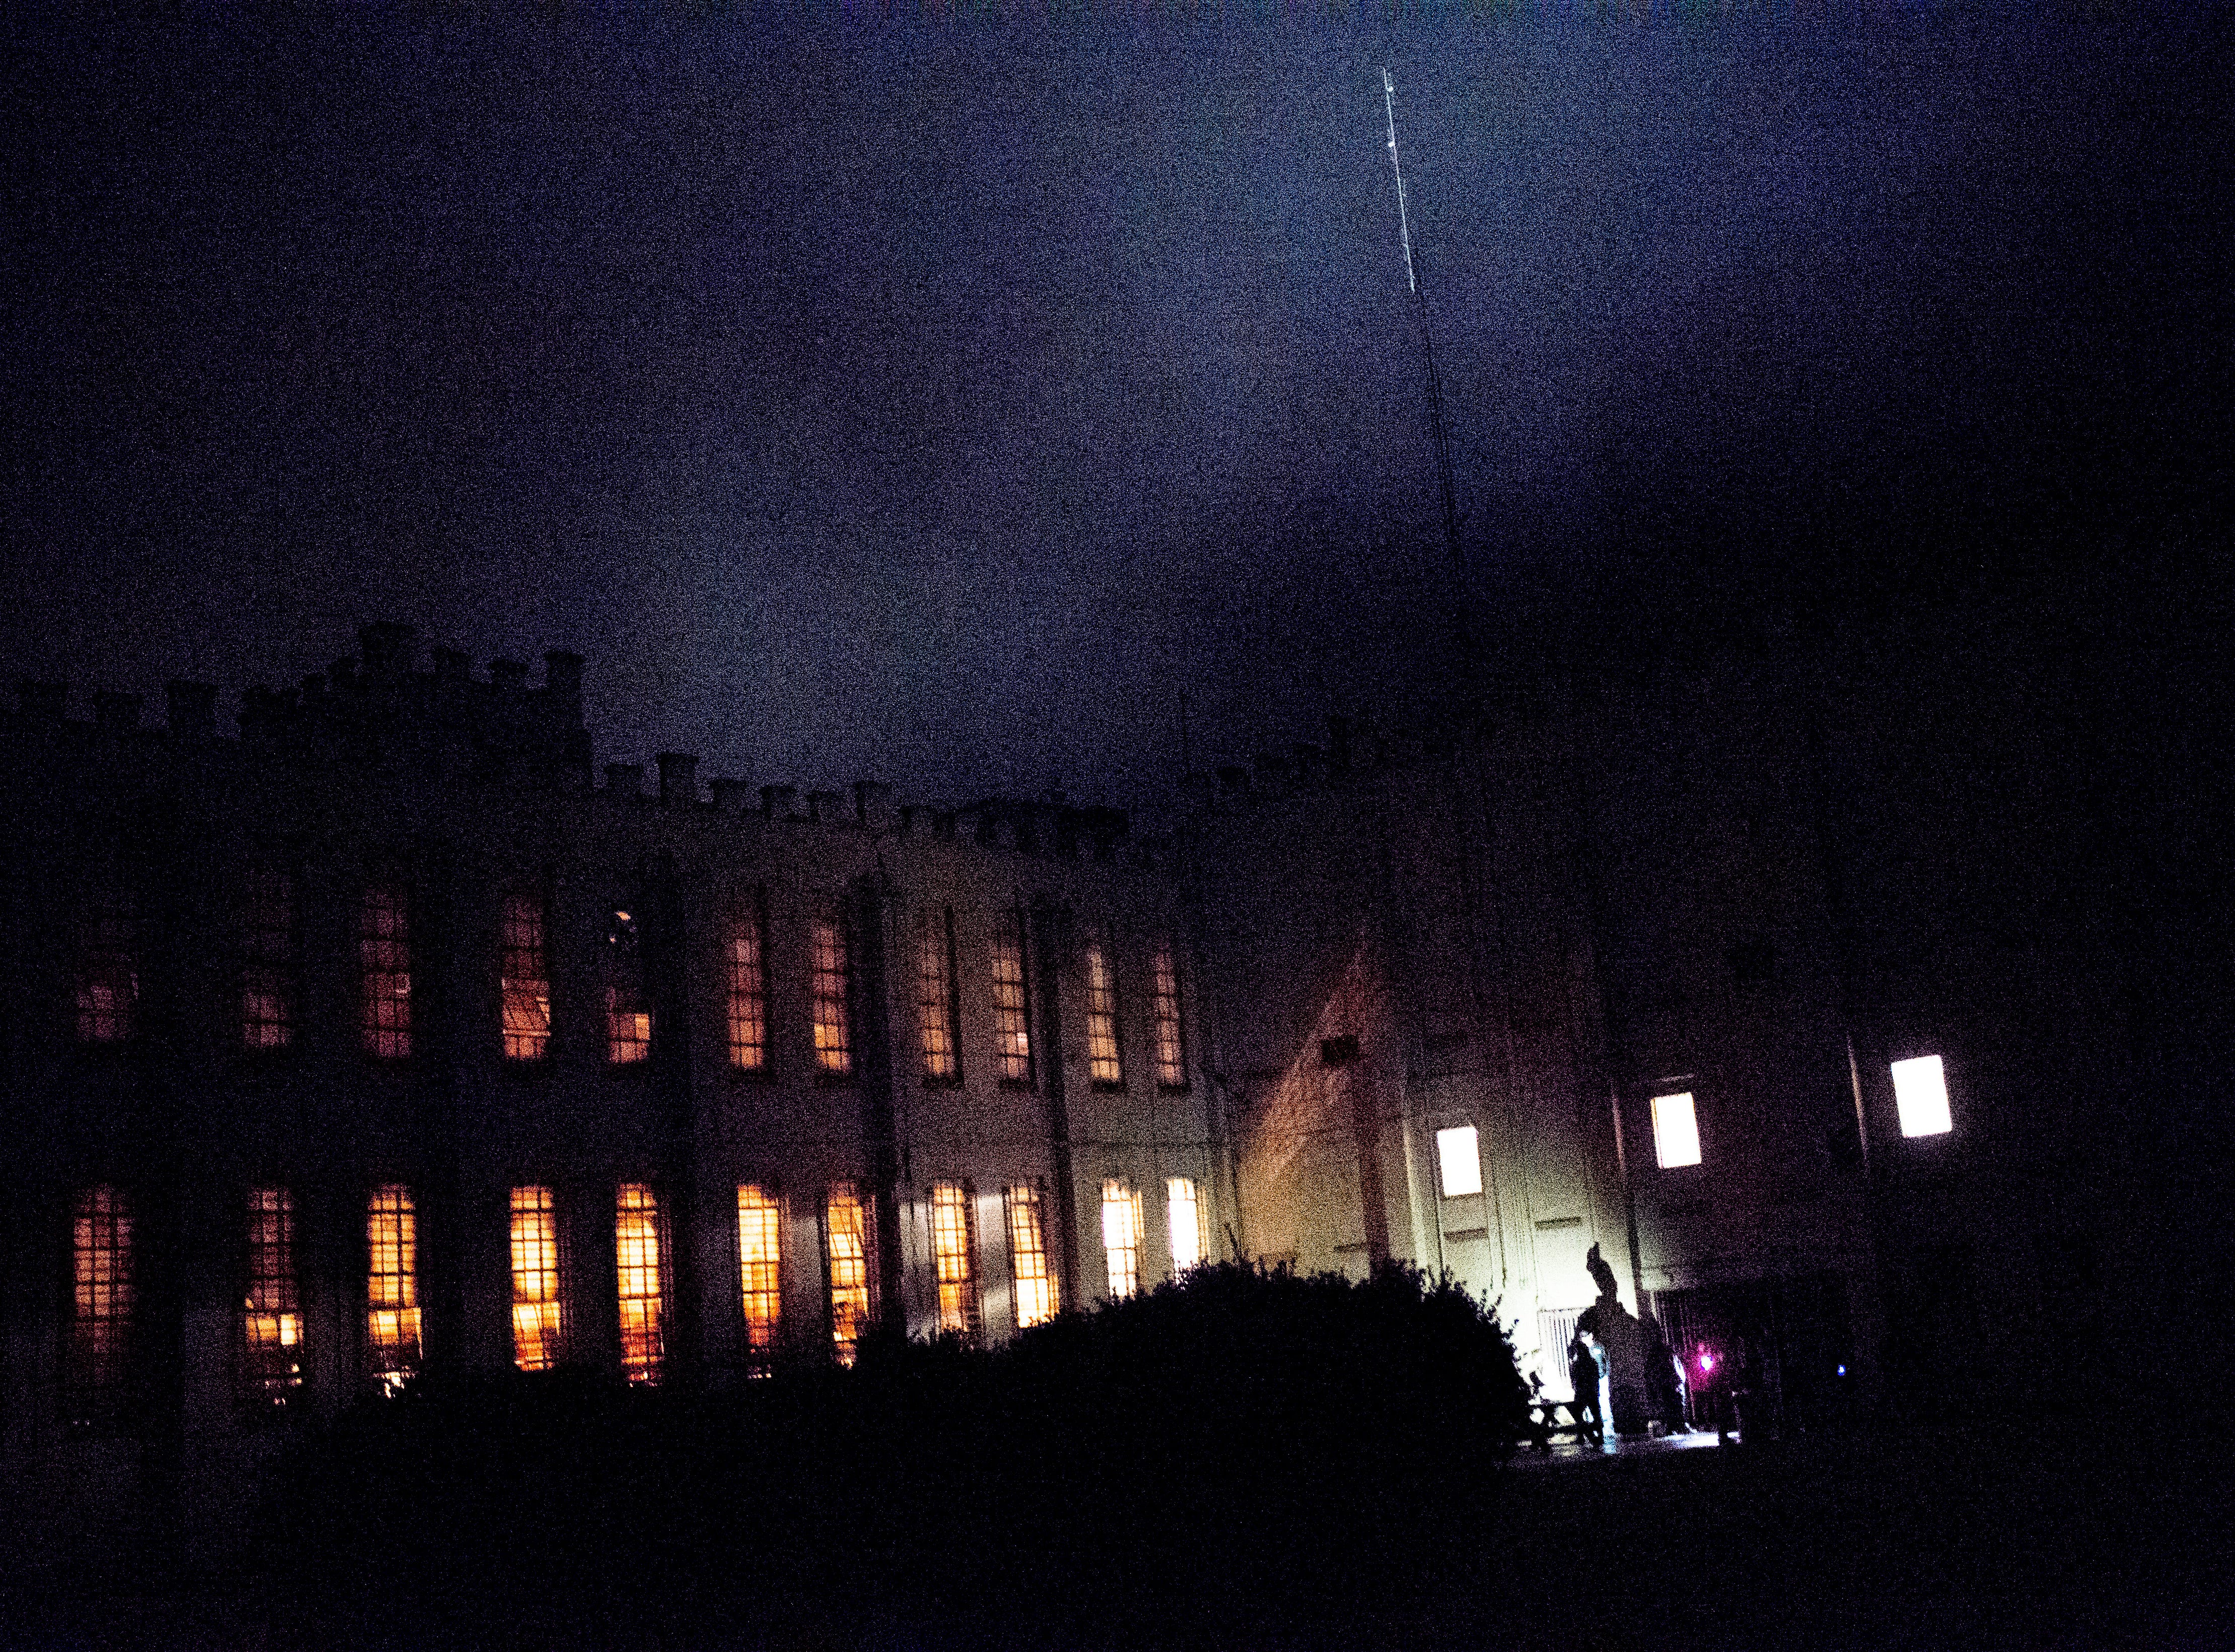 A view of the jail from the courtyard during a paranormal flashlight tour of Brushy Mountain State Penitentiary in Petros, Tennessee on Tuesday, October 16, 2018.